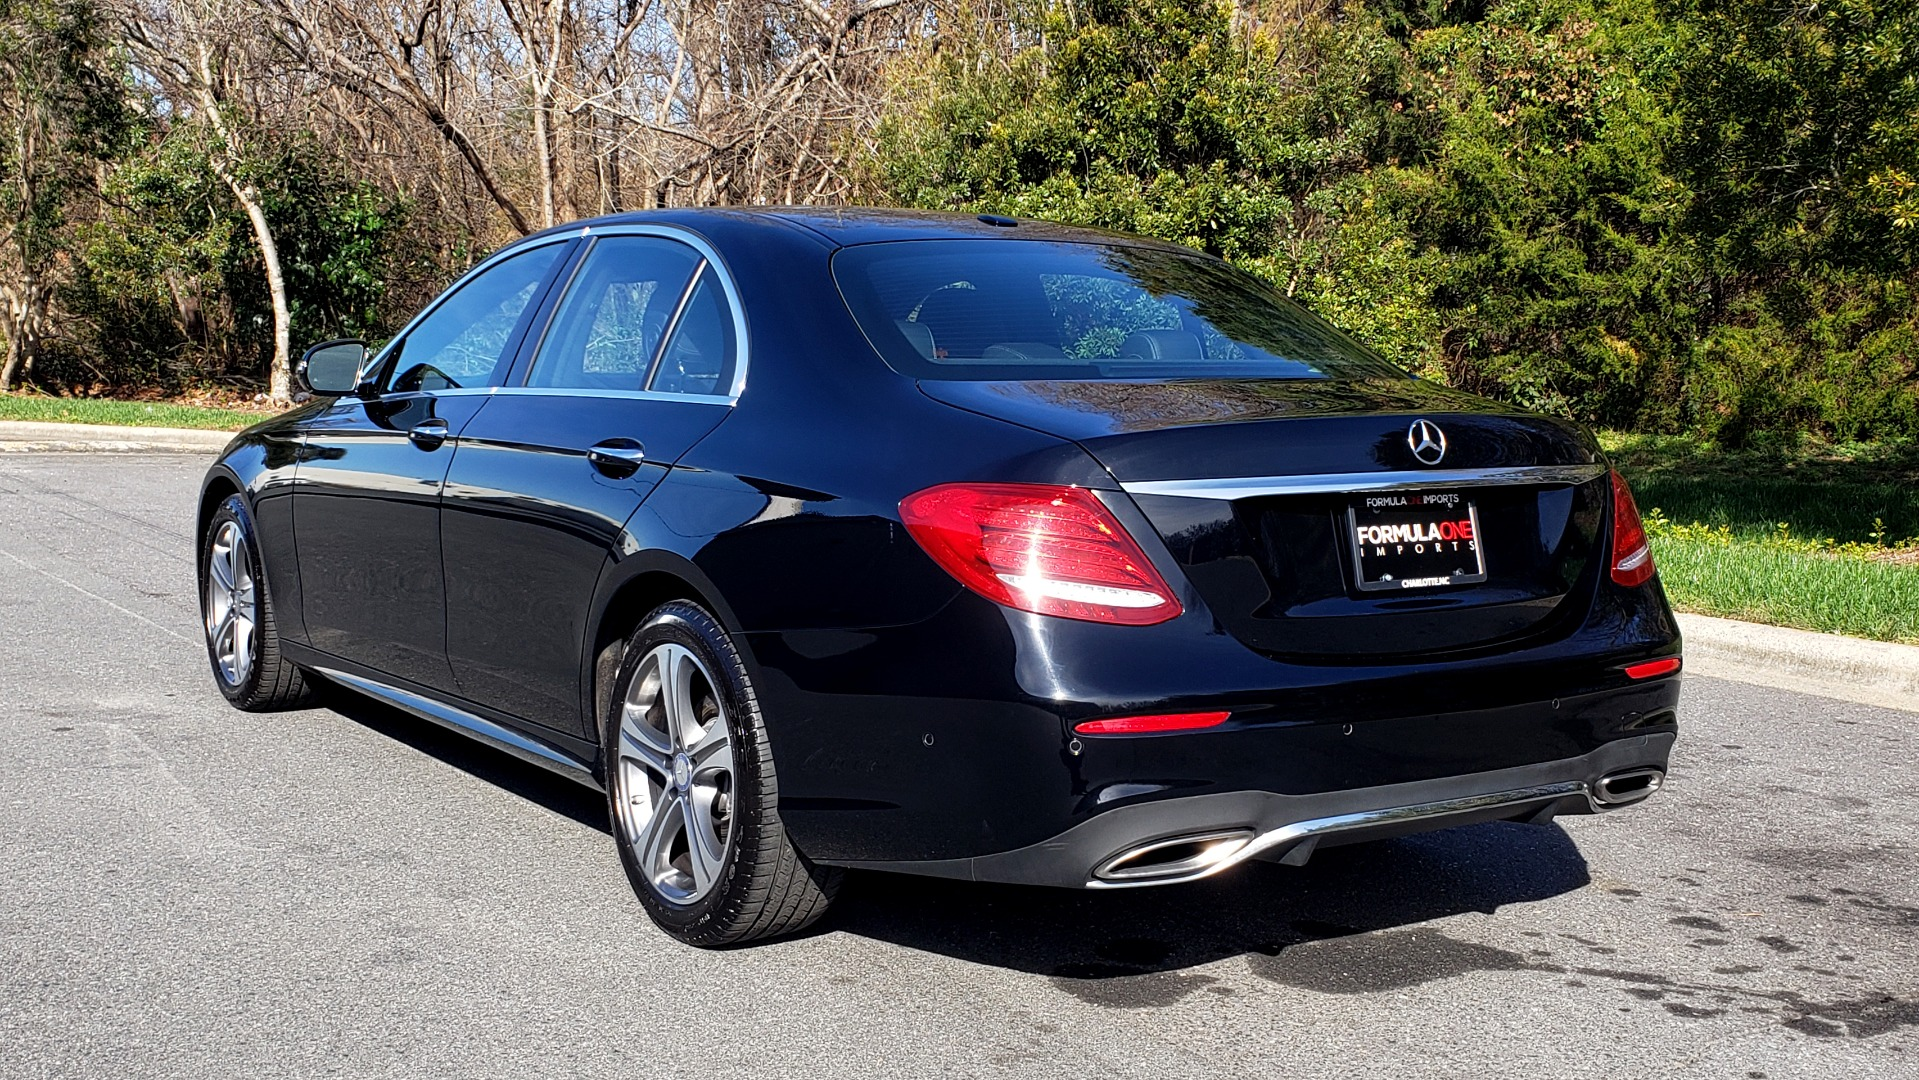 Used 2017 Mercedes-Benz E-CLASS E 300 PREMIUM / NAV / SUNROOF / BURMESTER / HTD STS / REARVIEW for sale $29,995 at Formula Imports in Charlotte NC 28227 3